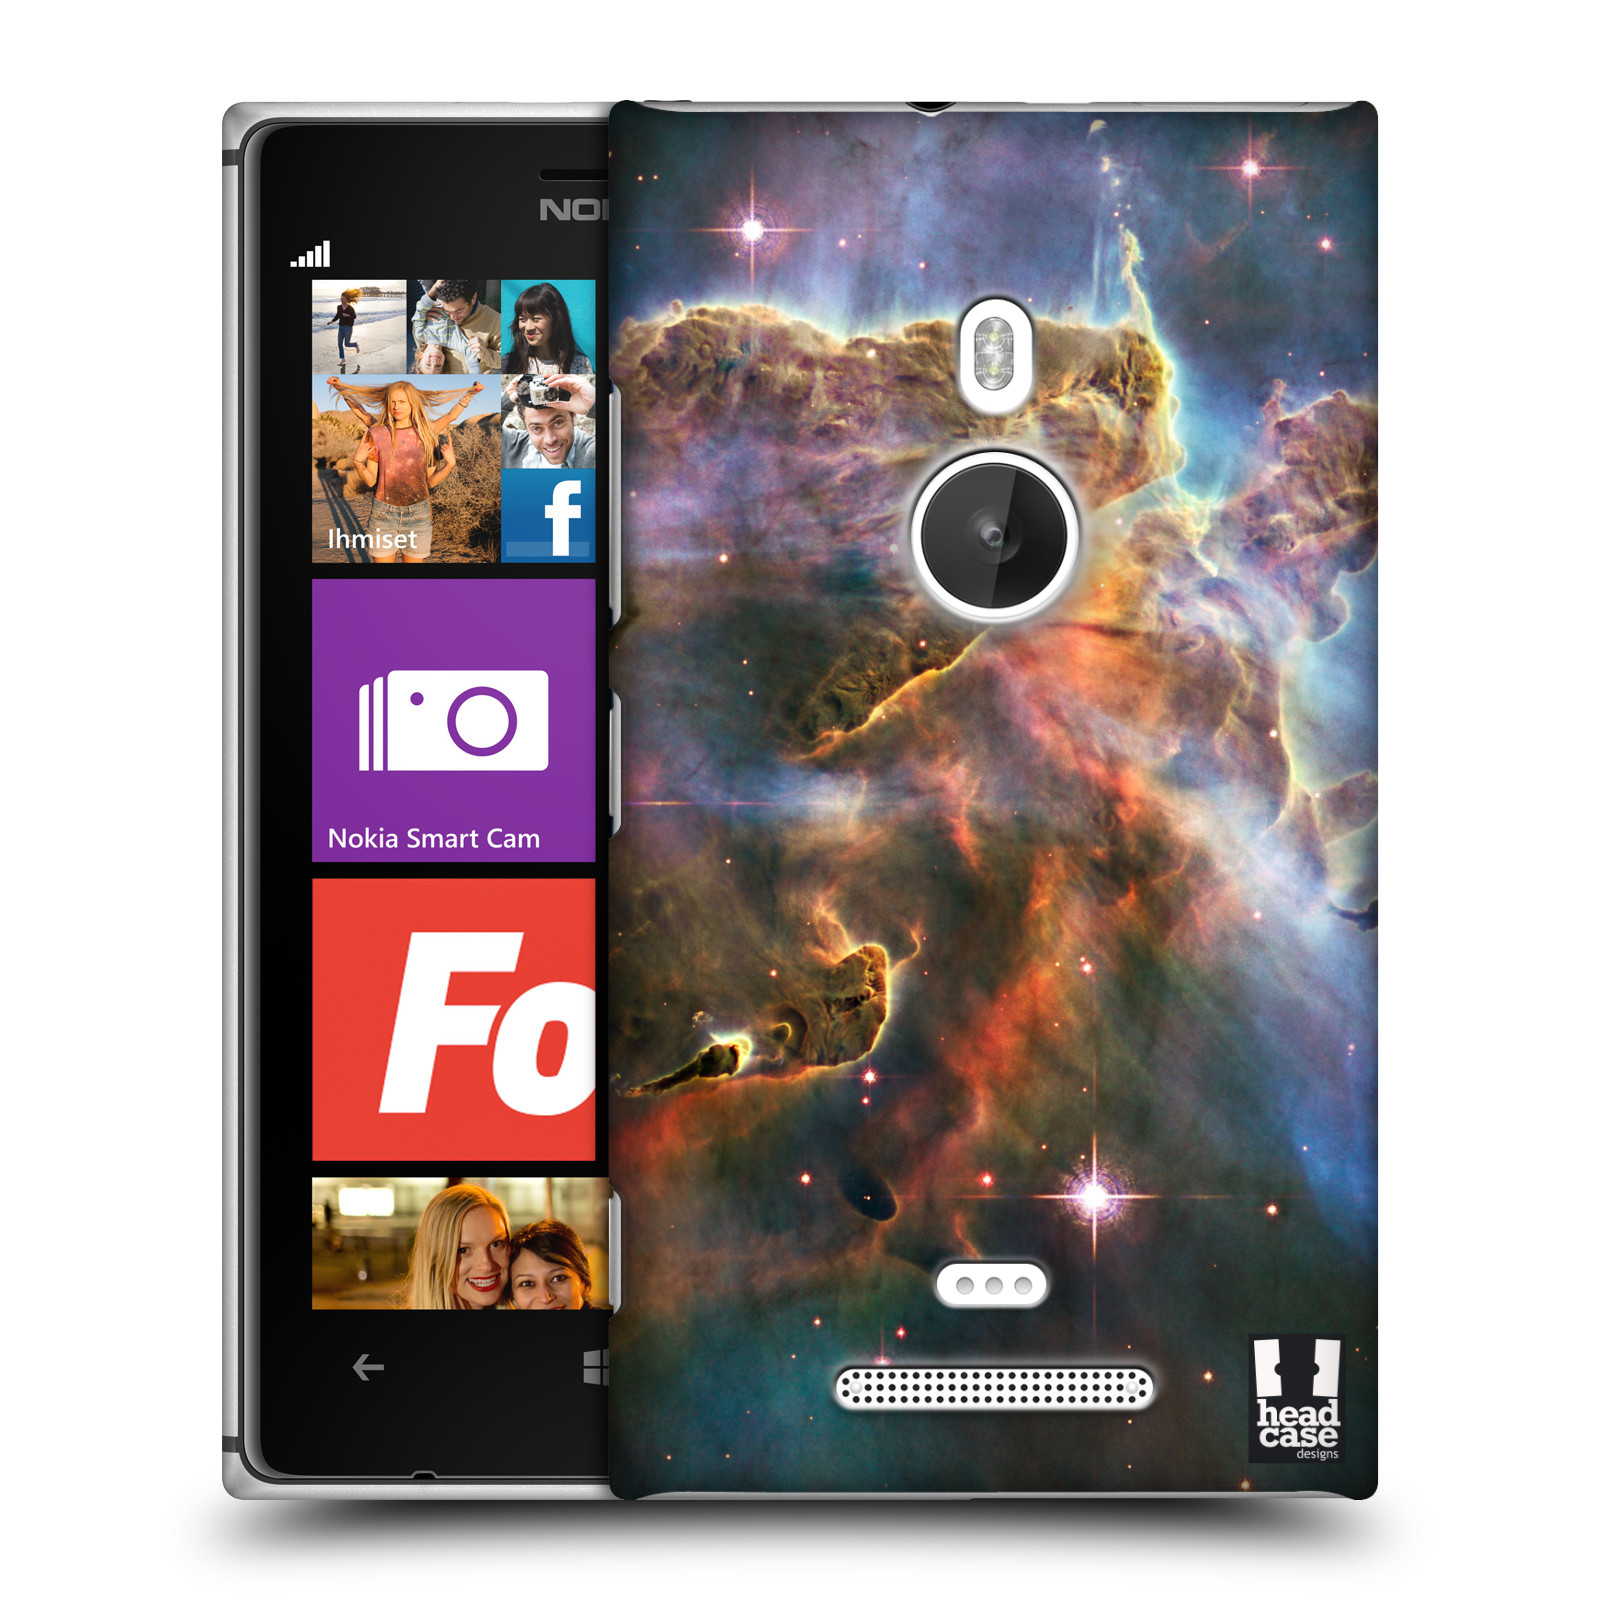 HEAD CASE DESIGNS OUTER SPACE HARD BACK CASE FOR NOKIA LUMIA 925